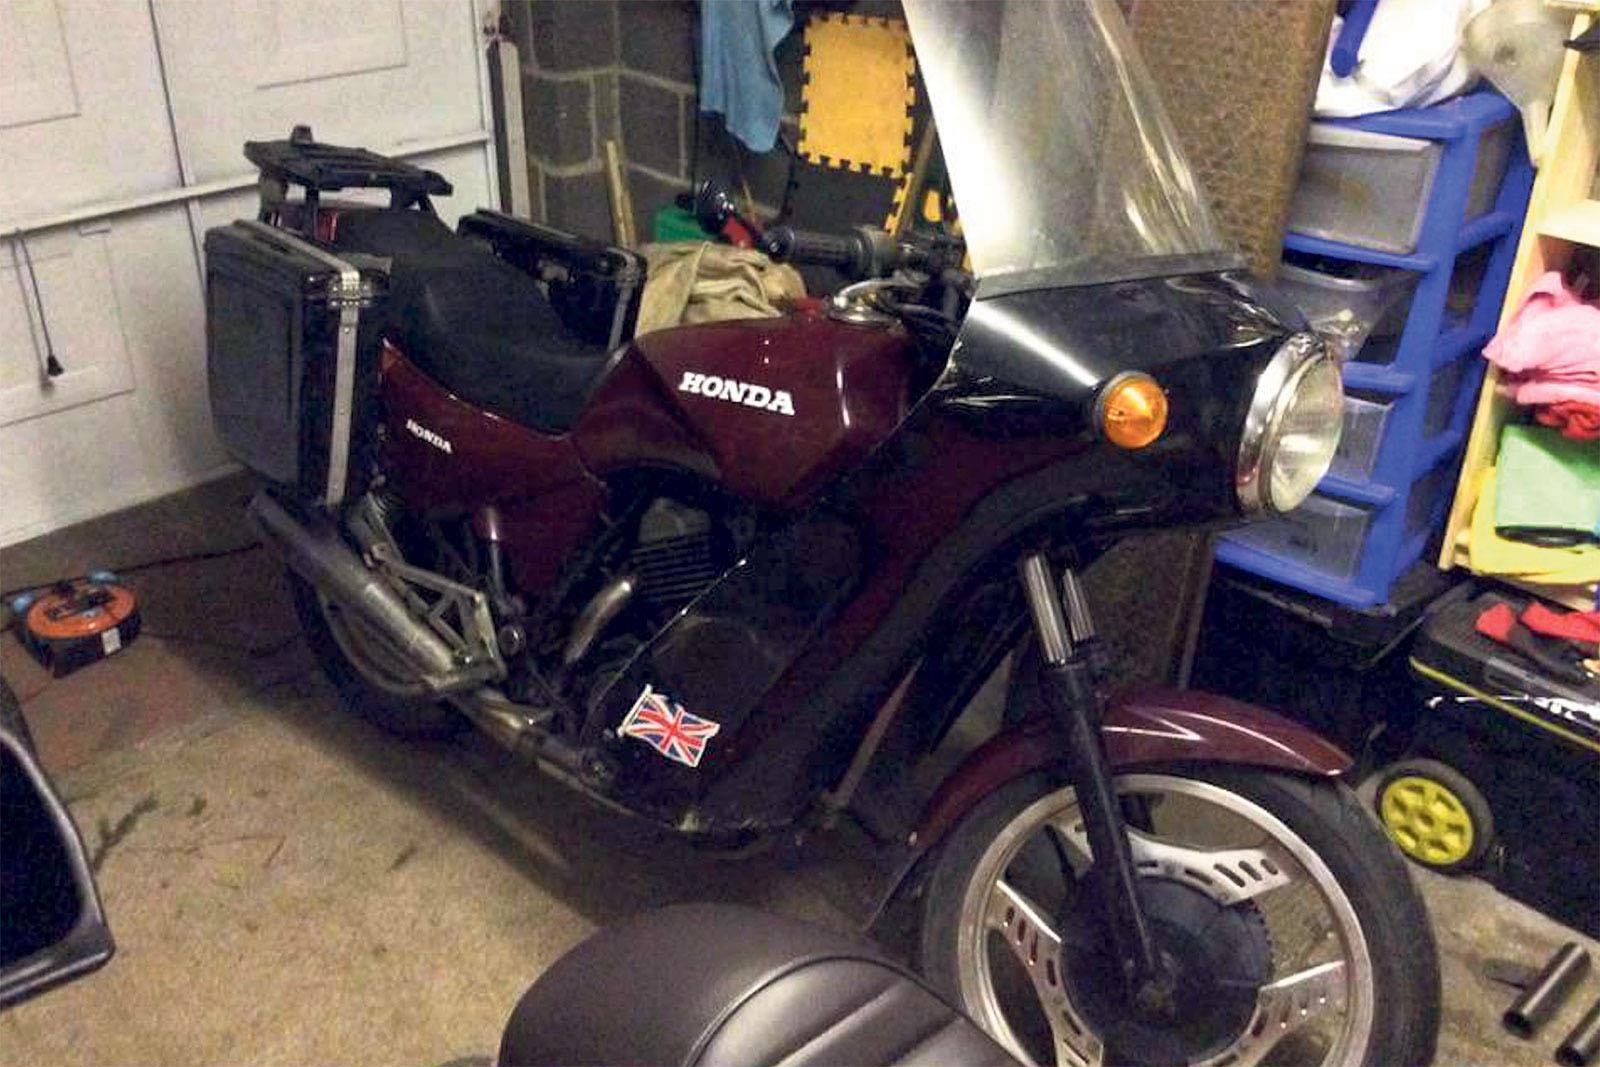 Shed Built 1983 Honda Vt500 Mcn Shadow Vt500c Parts The Builds Very Humble Origins